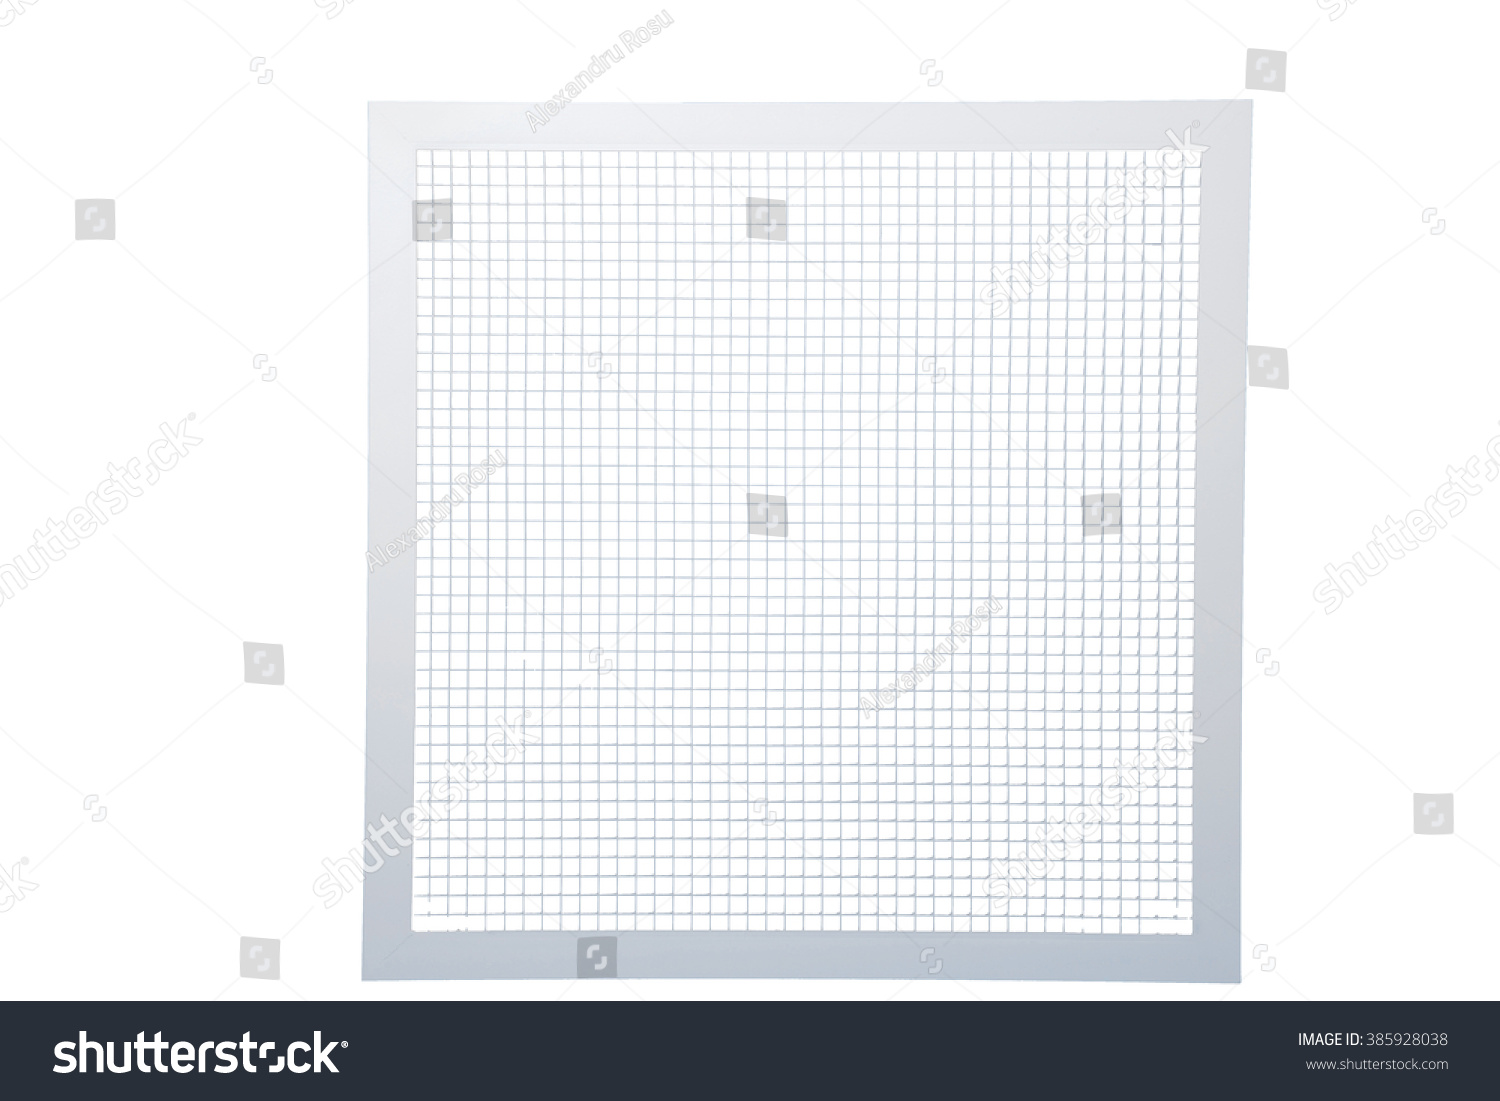 commercial air ventilation system stock photo 385928038 - shutterstock